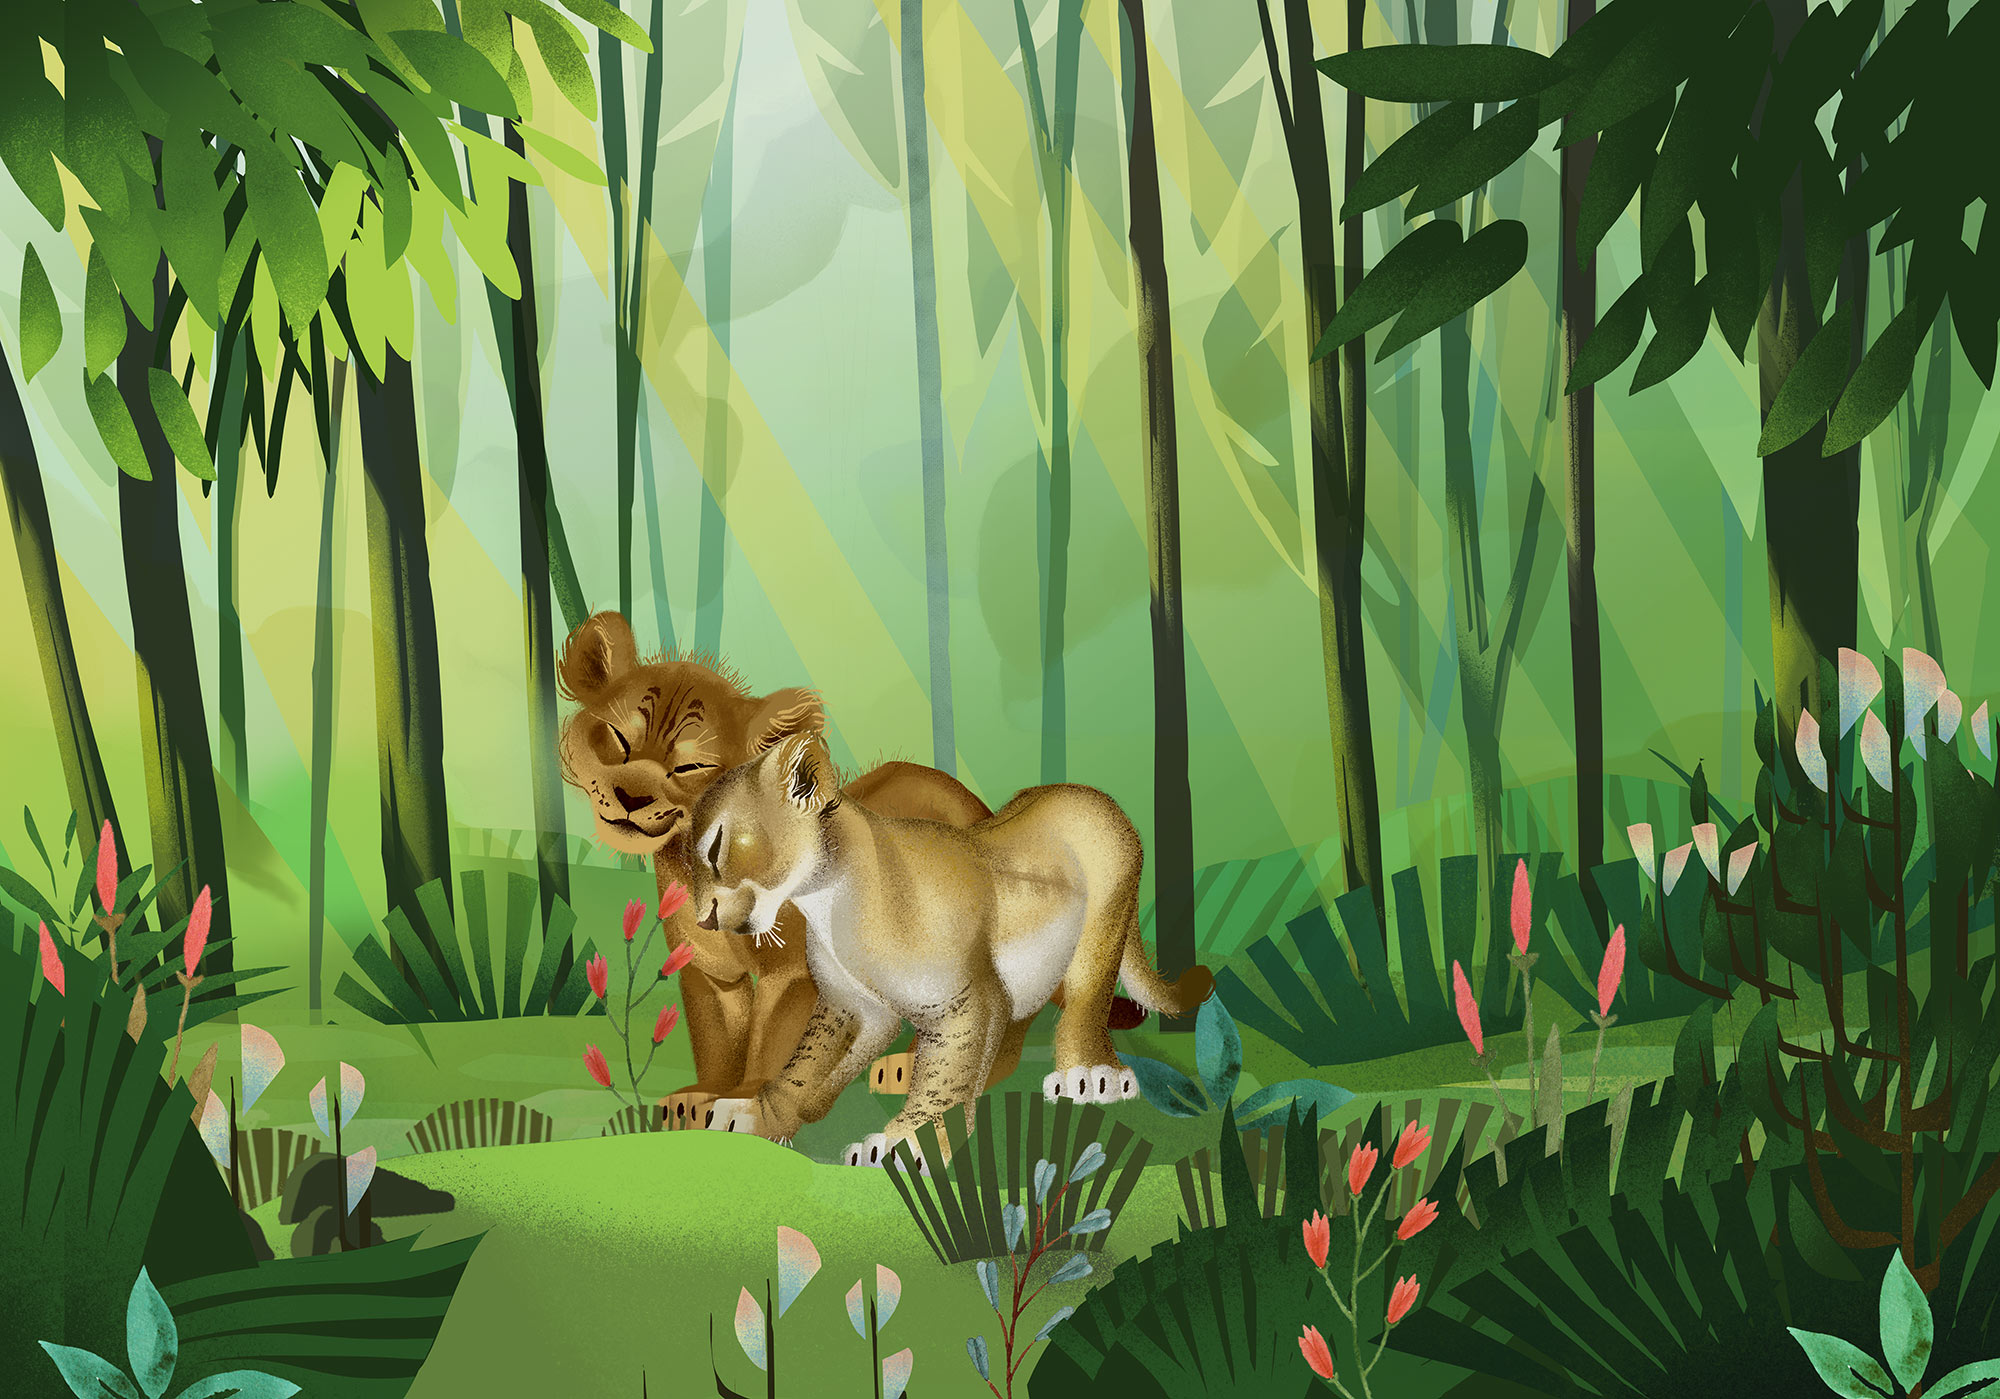 Papier peint enfant Disney jungle Roi Lion Love - Papier peint Panoramique Komar